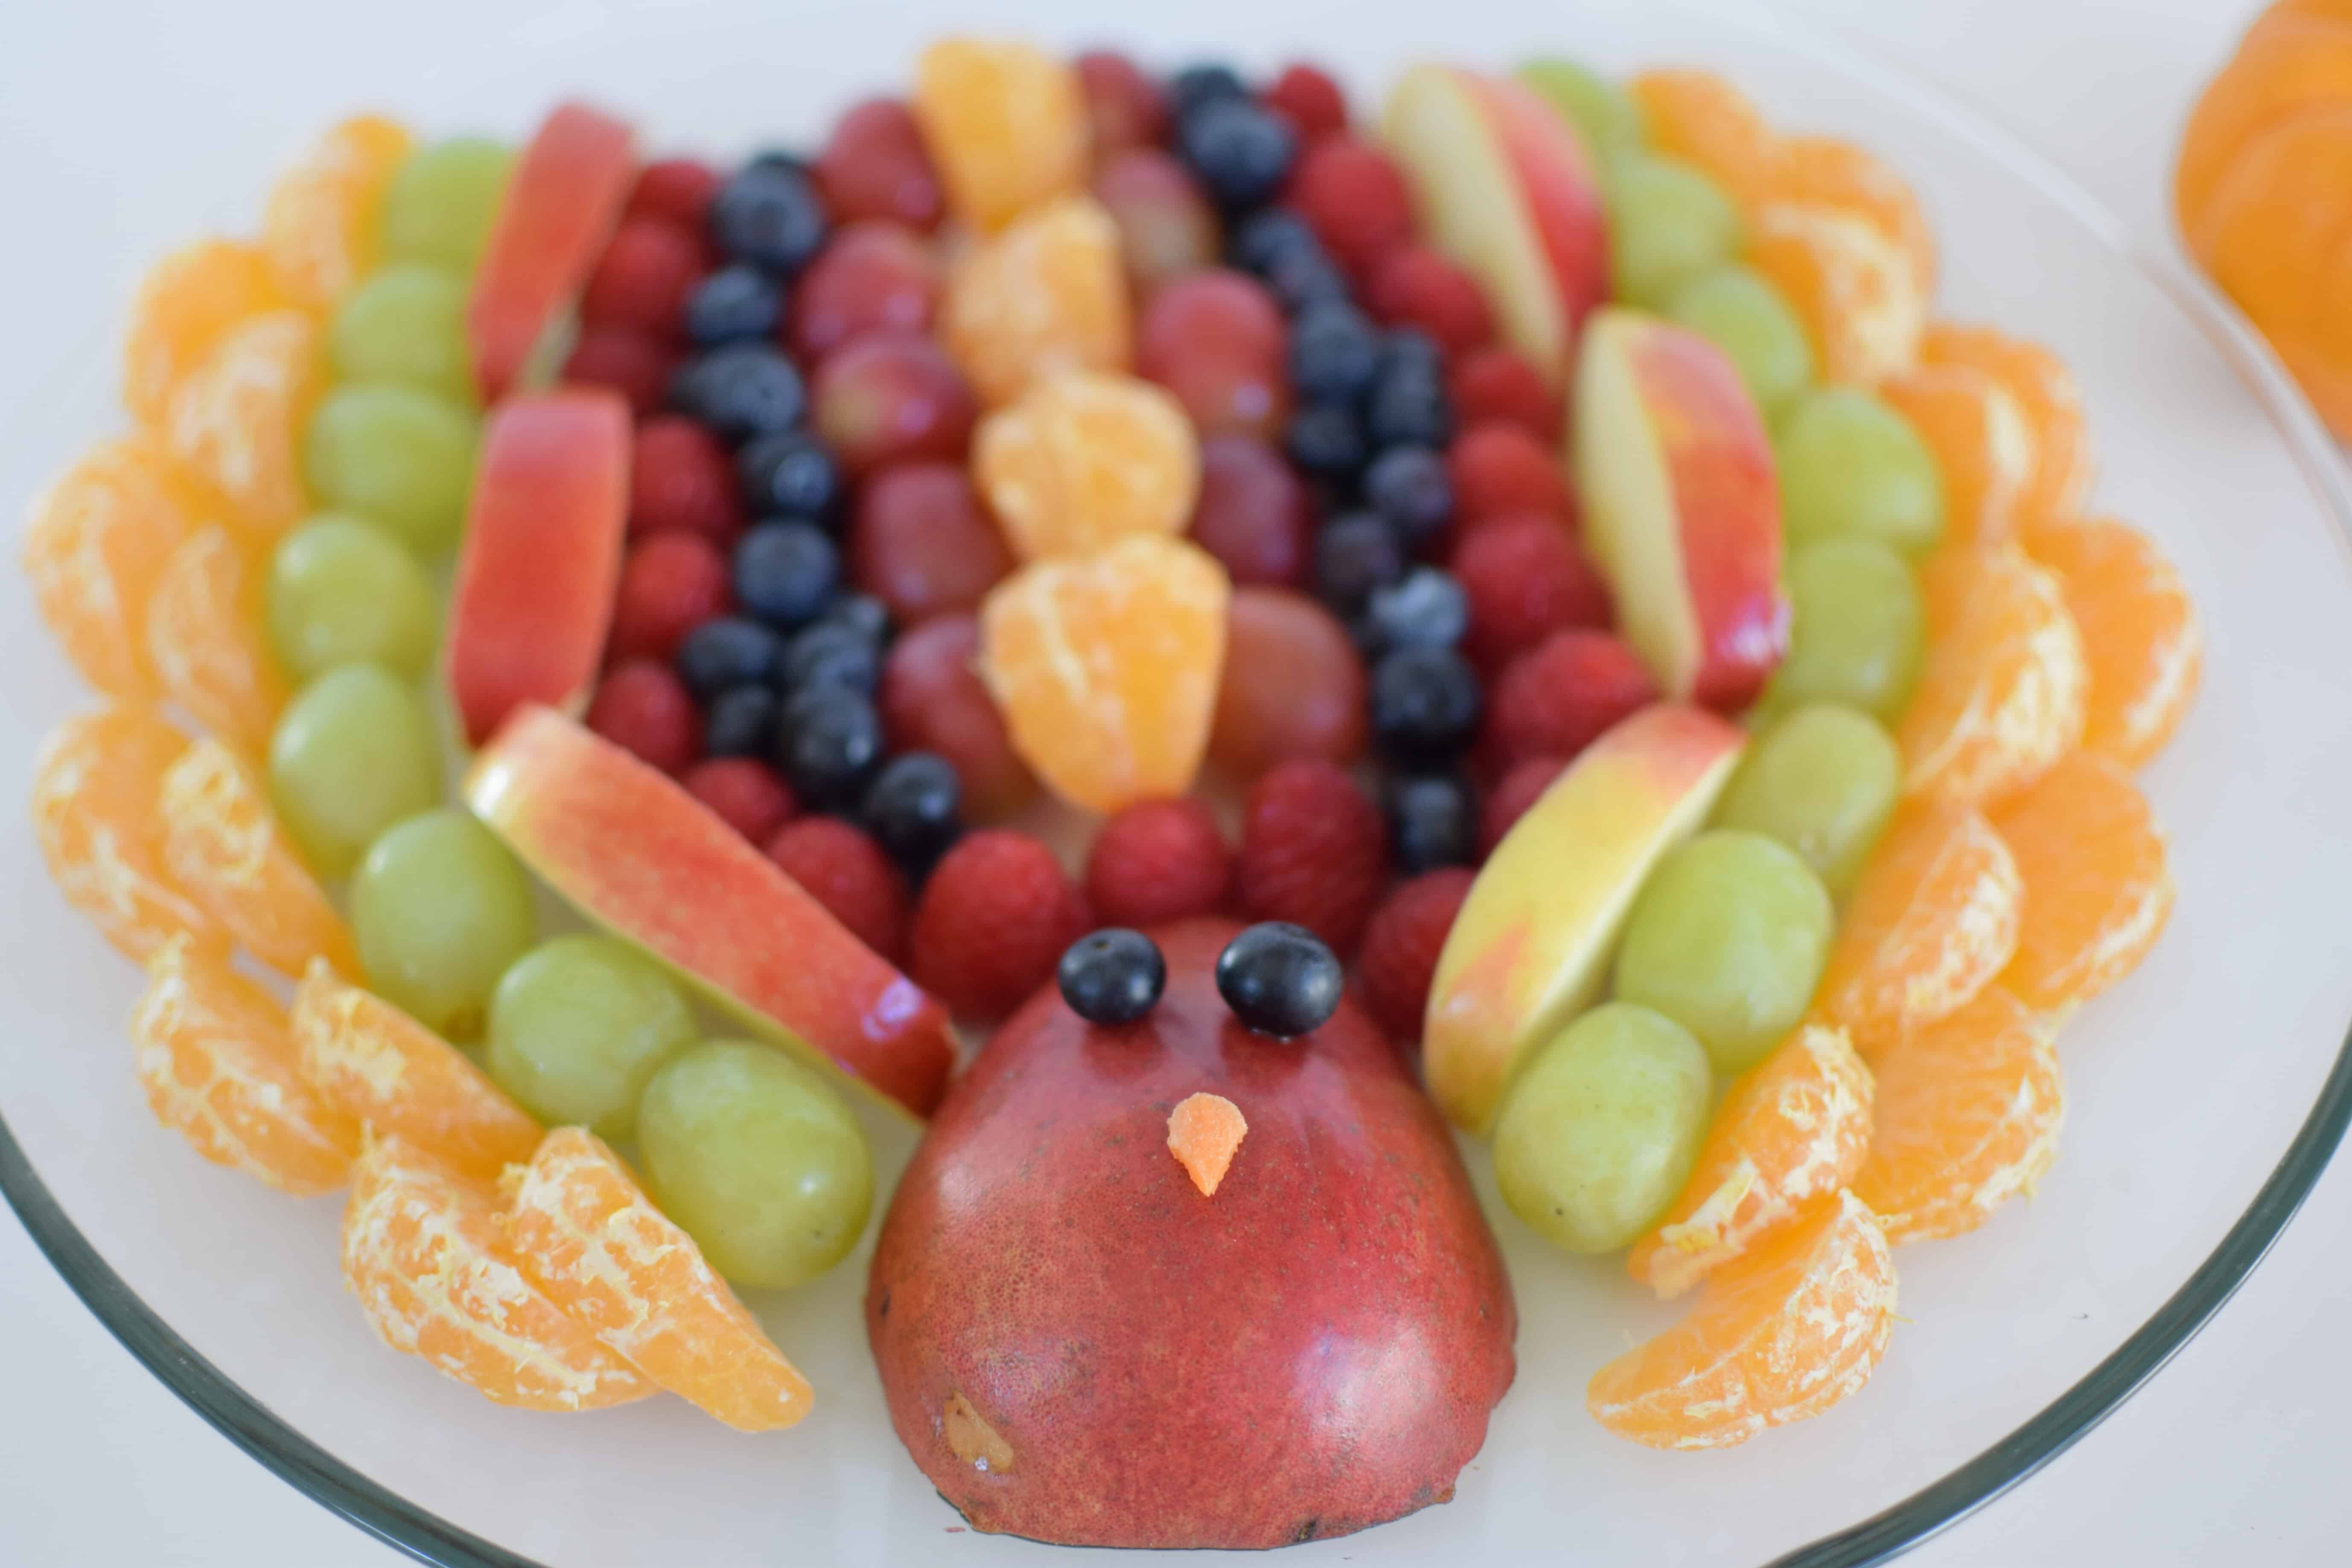 2018 mommyblog mom bloggerWellness familyblog healthymom bloggerfamily influencer instagram natural mama organic living clean living health mother fatherblogdadblogtravel familyblog United States family travel blogs 2017 website sites Colorado denvermomblog with kids with babies with toddlers travel budget flying with toddler tips. Paleomomblog mommybloggerdaddyblog thanksgiving fruit turkey appetizer